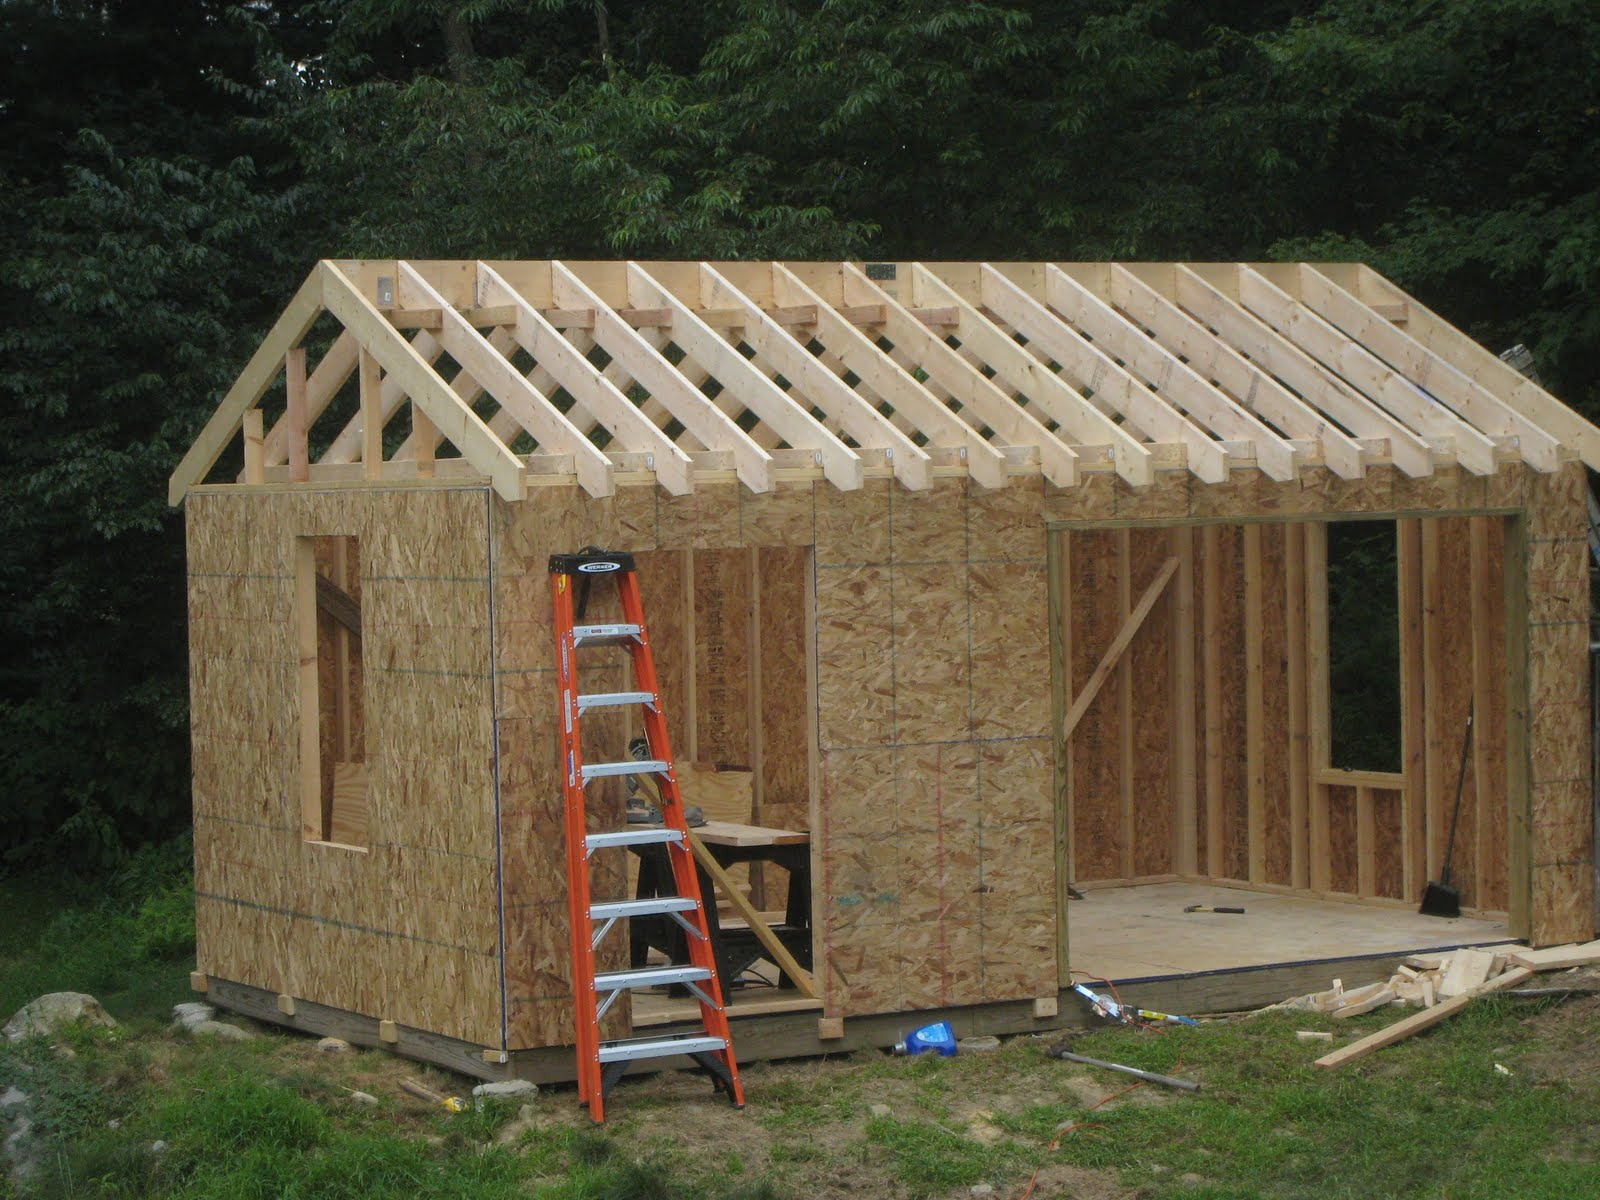 Storage Sheds Plans 10x12 on garden sheds for sale ia